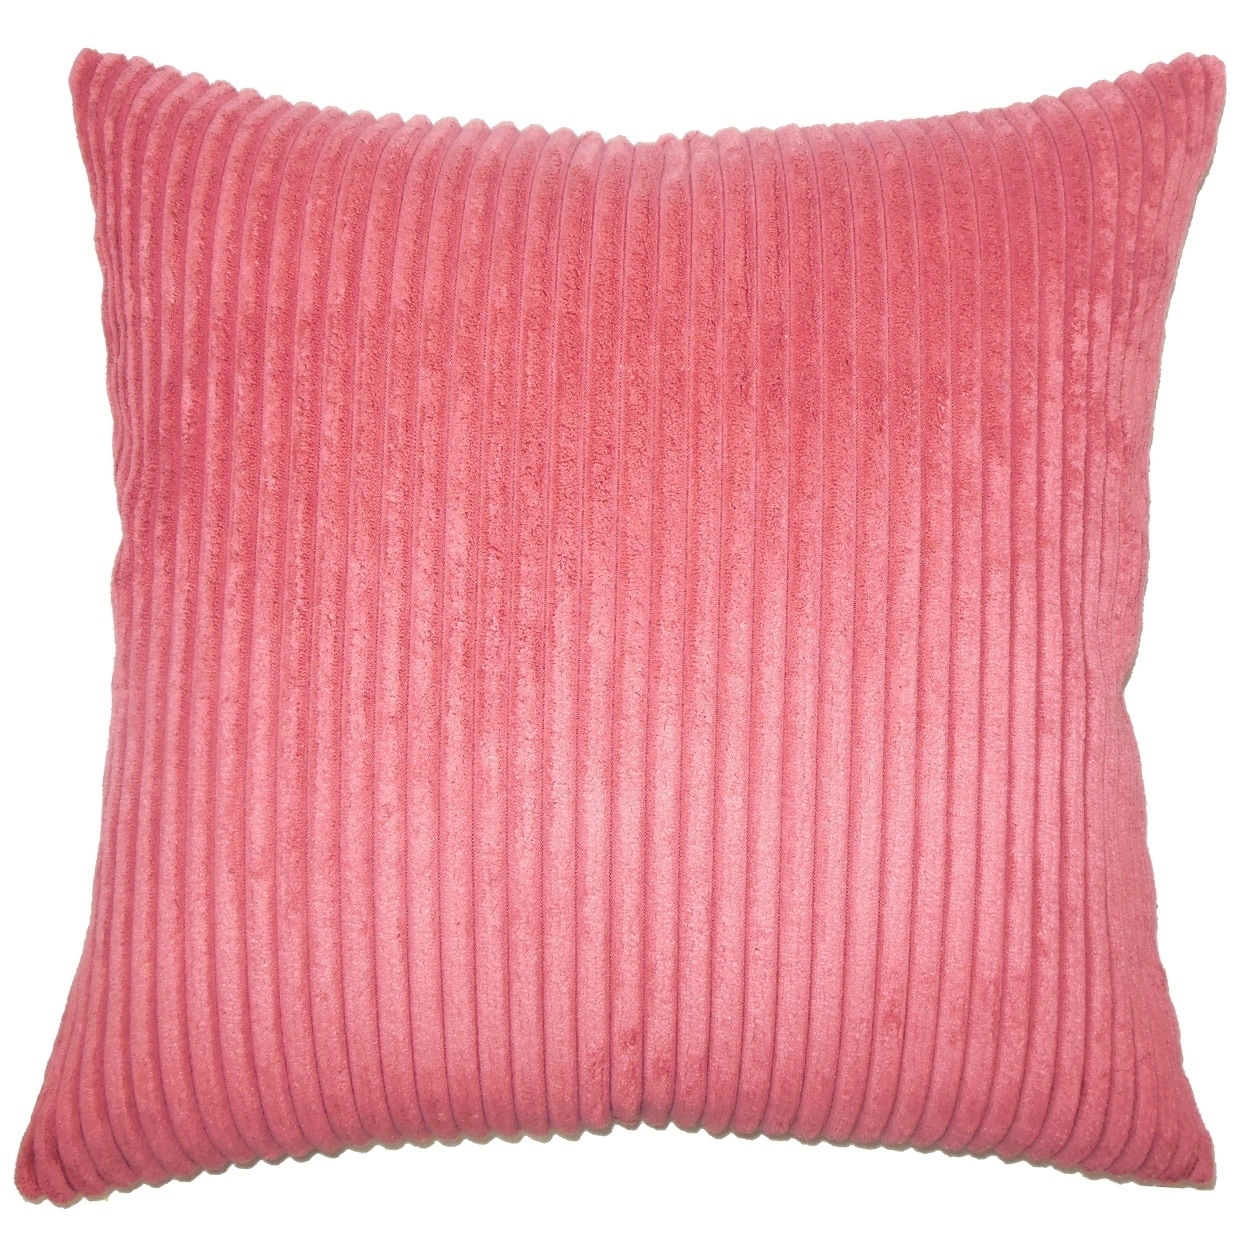 Calvine Solid Down Filled Throw Pillow in Berry (Square - 18 x 18)